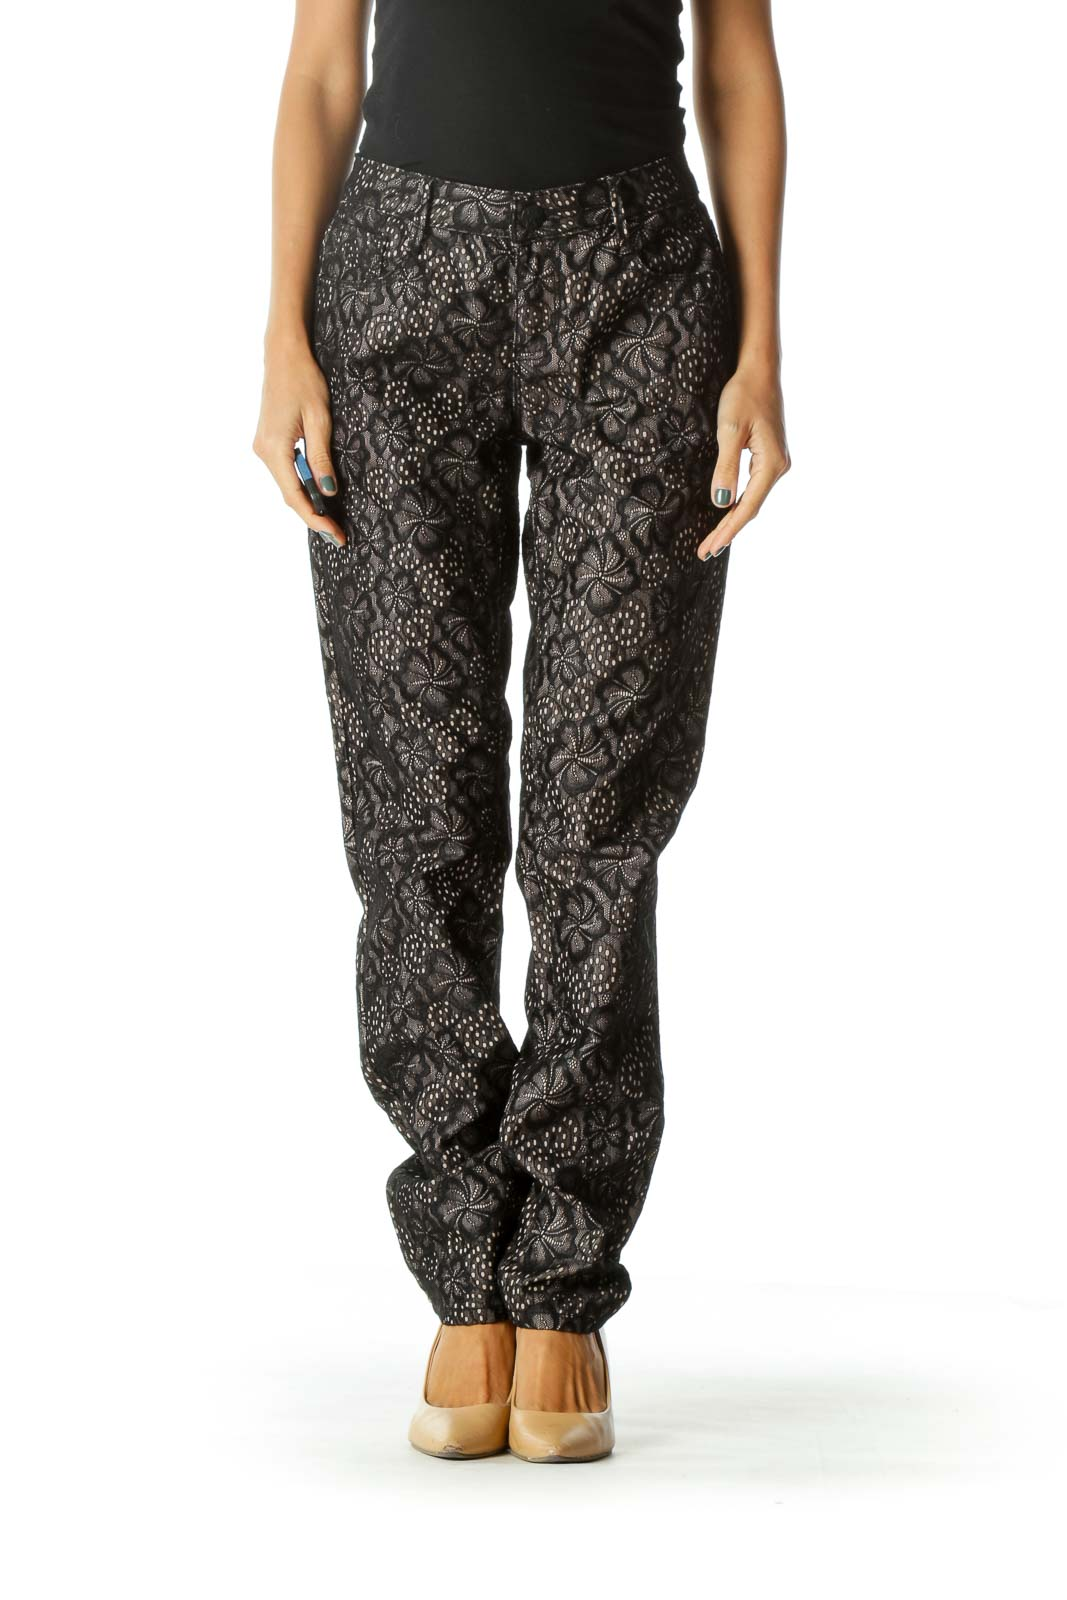 Black Beige Lining Floral Lace Knit Textured Pants Front